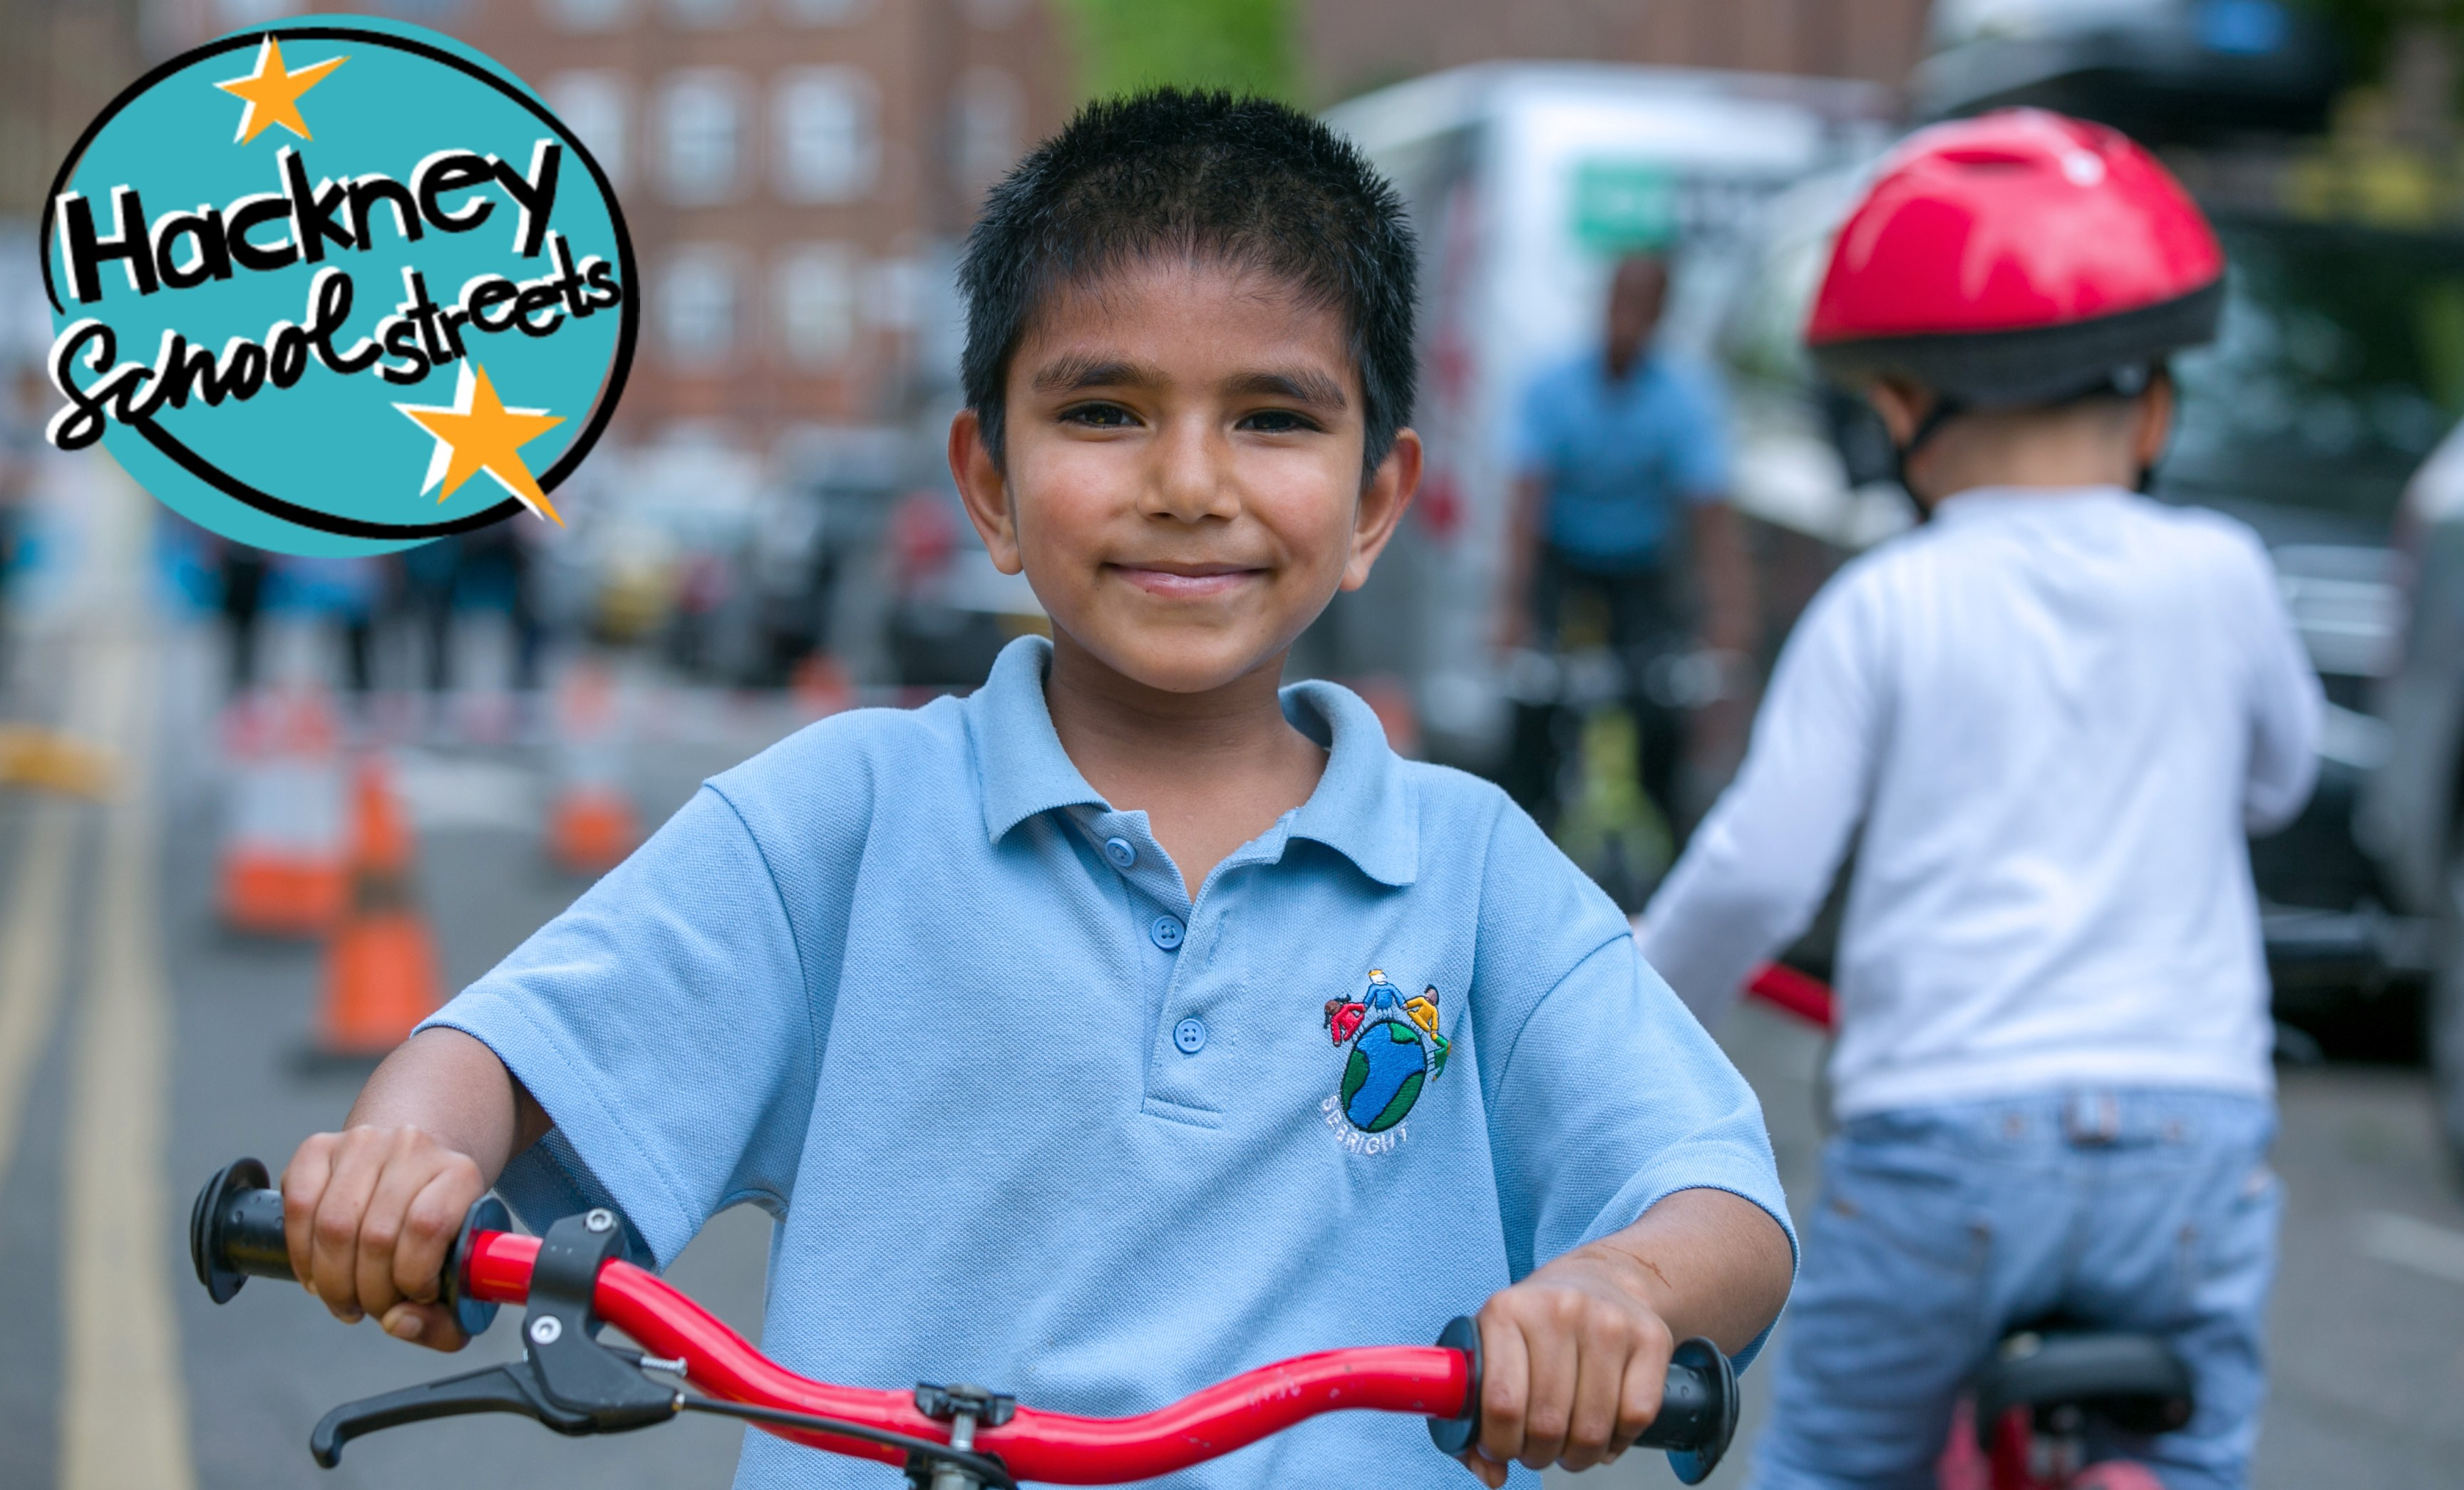 """A child on bike smiles into the camera. The aqua-and-yellow """"Hackney School Streets"""" logo is in the corner."""